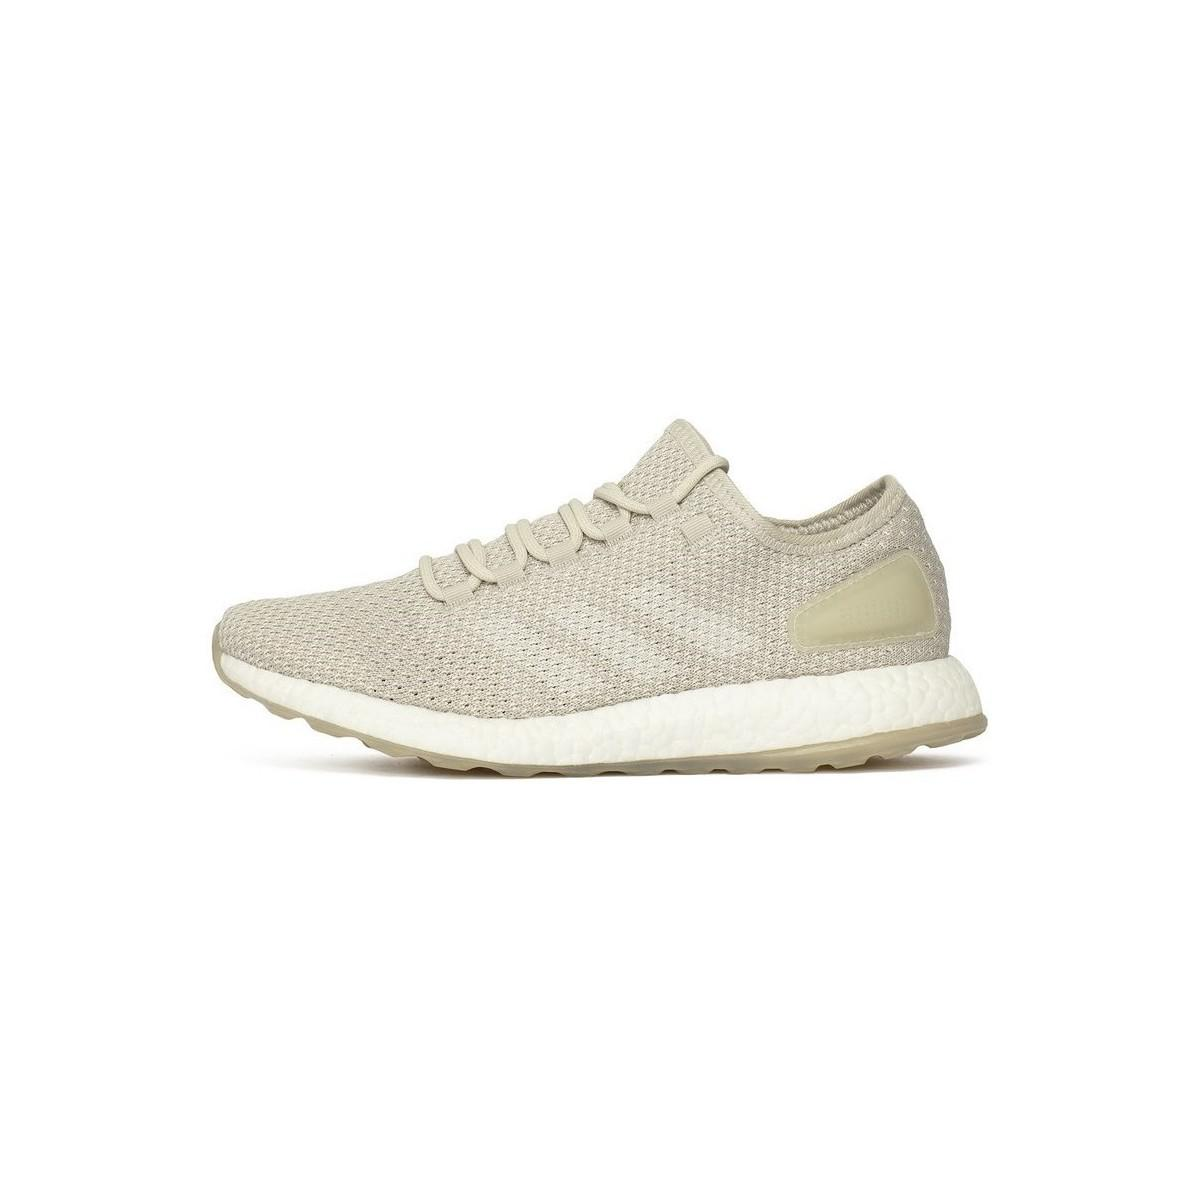 625a3d646 adidas Pureboost Clima Men s Shoes (trainers) In Multicolour in ...